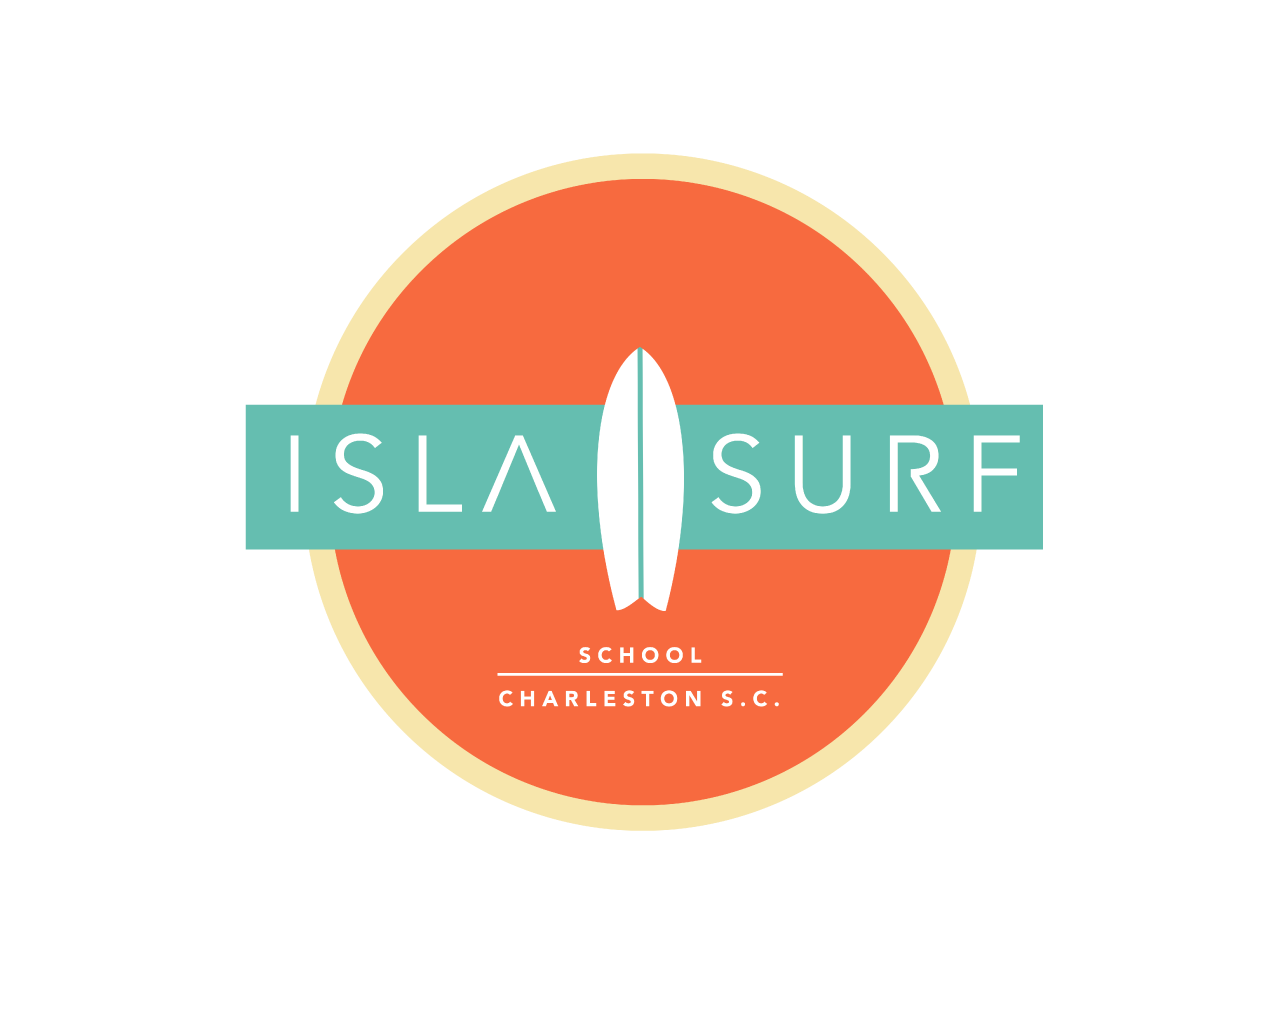 isla surf school.png